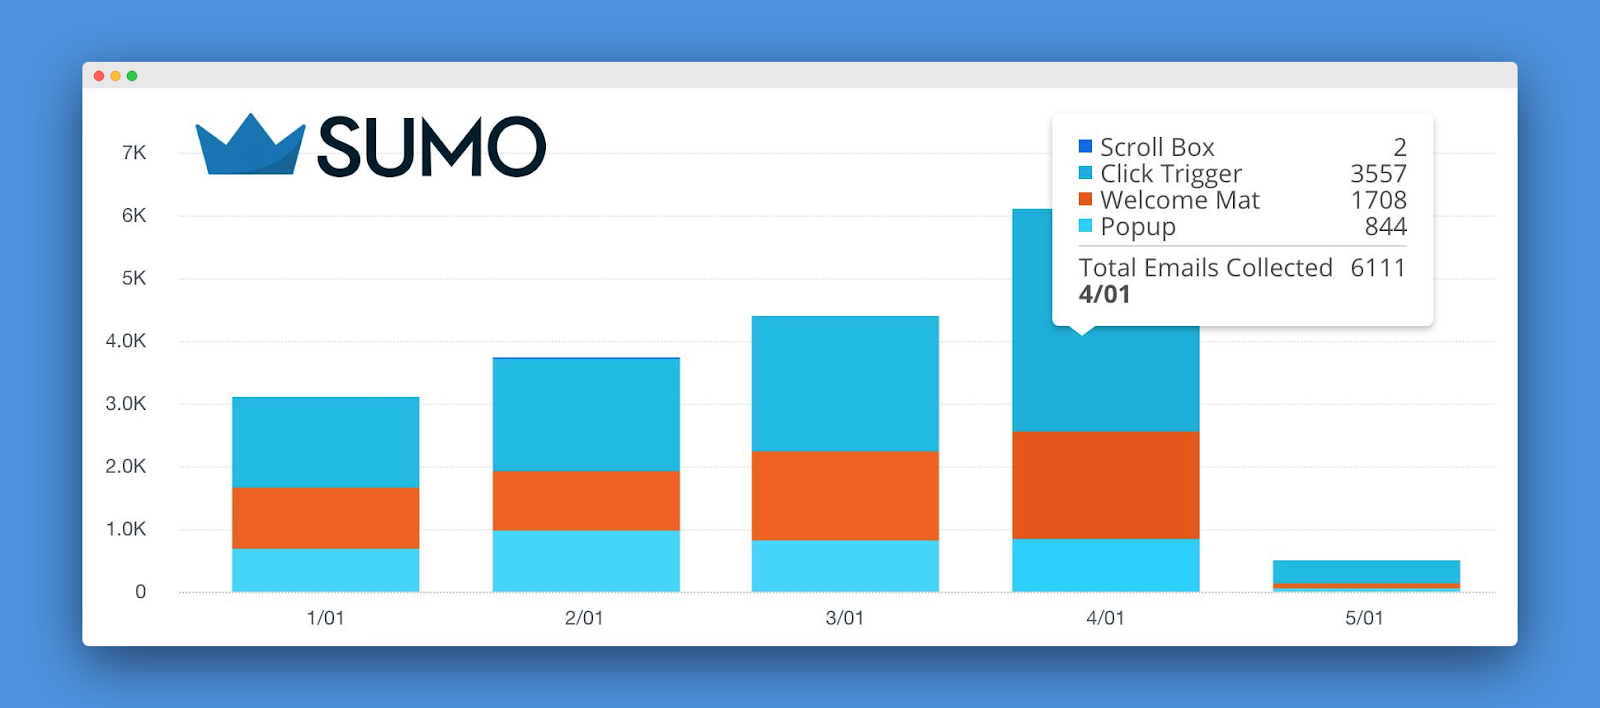 Screenshot of emails collected per month by Sumo